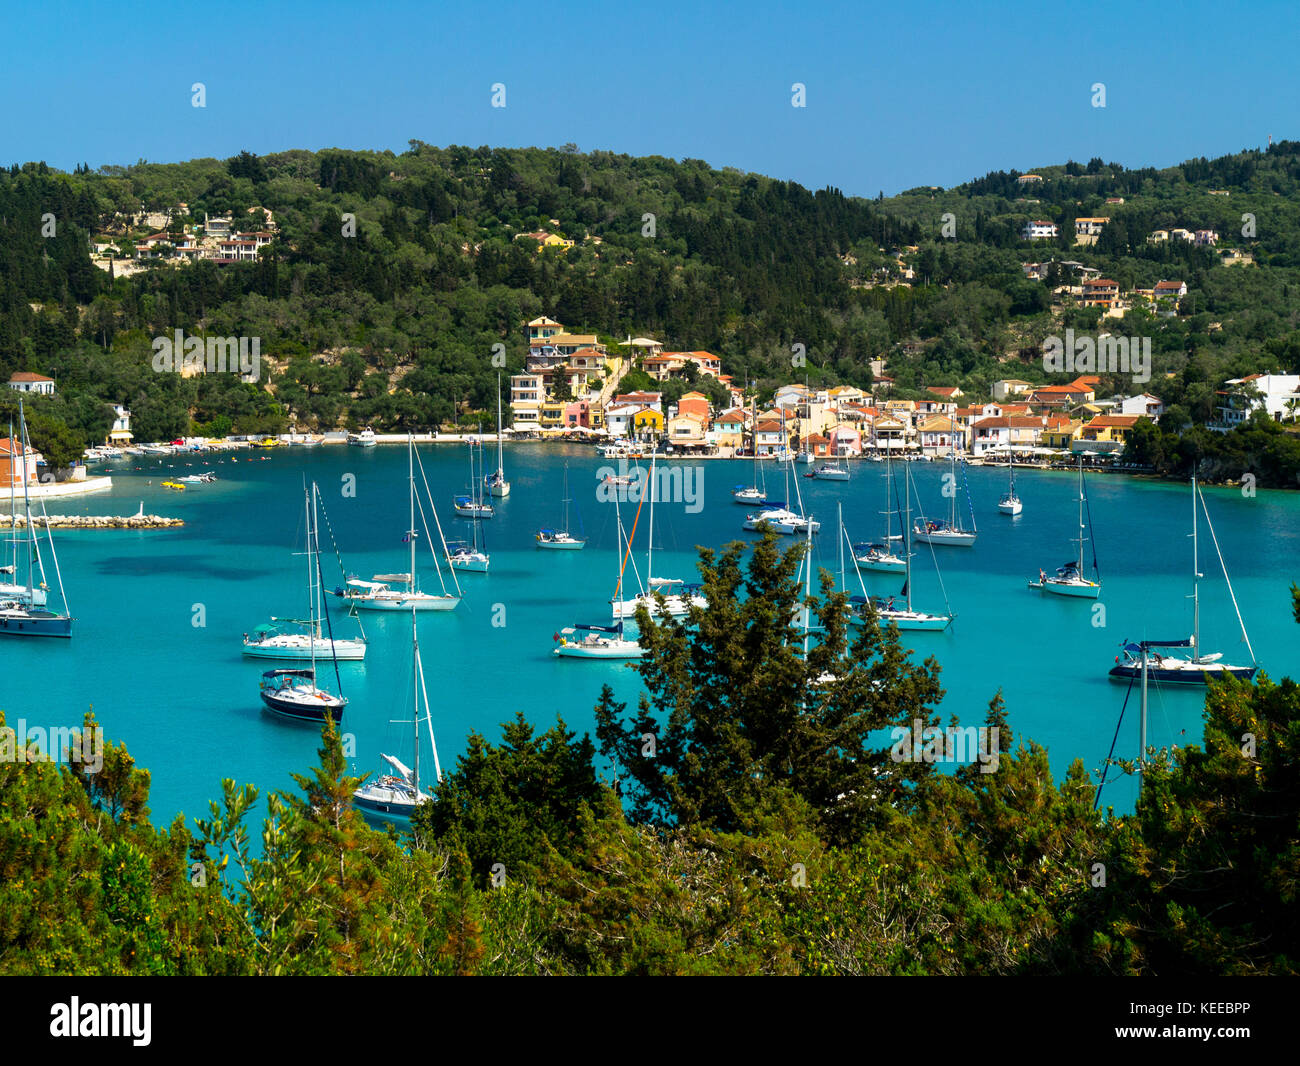 Yachts at anchor in the pretty and popular Lakka Bay, Paxos, Greece - Stock Image